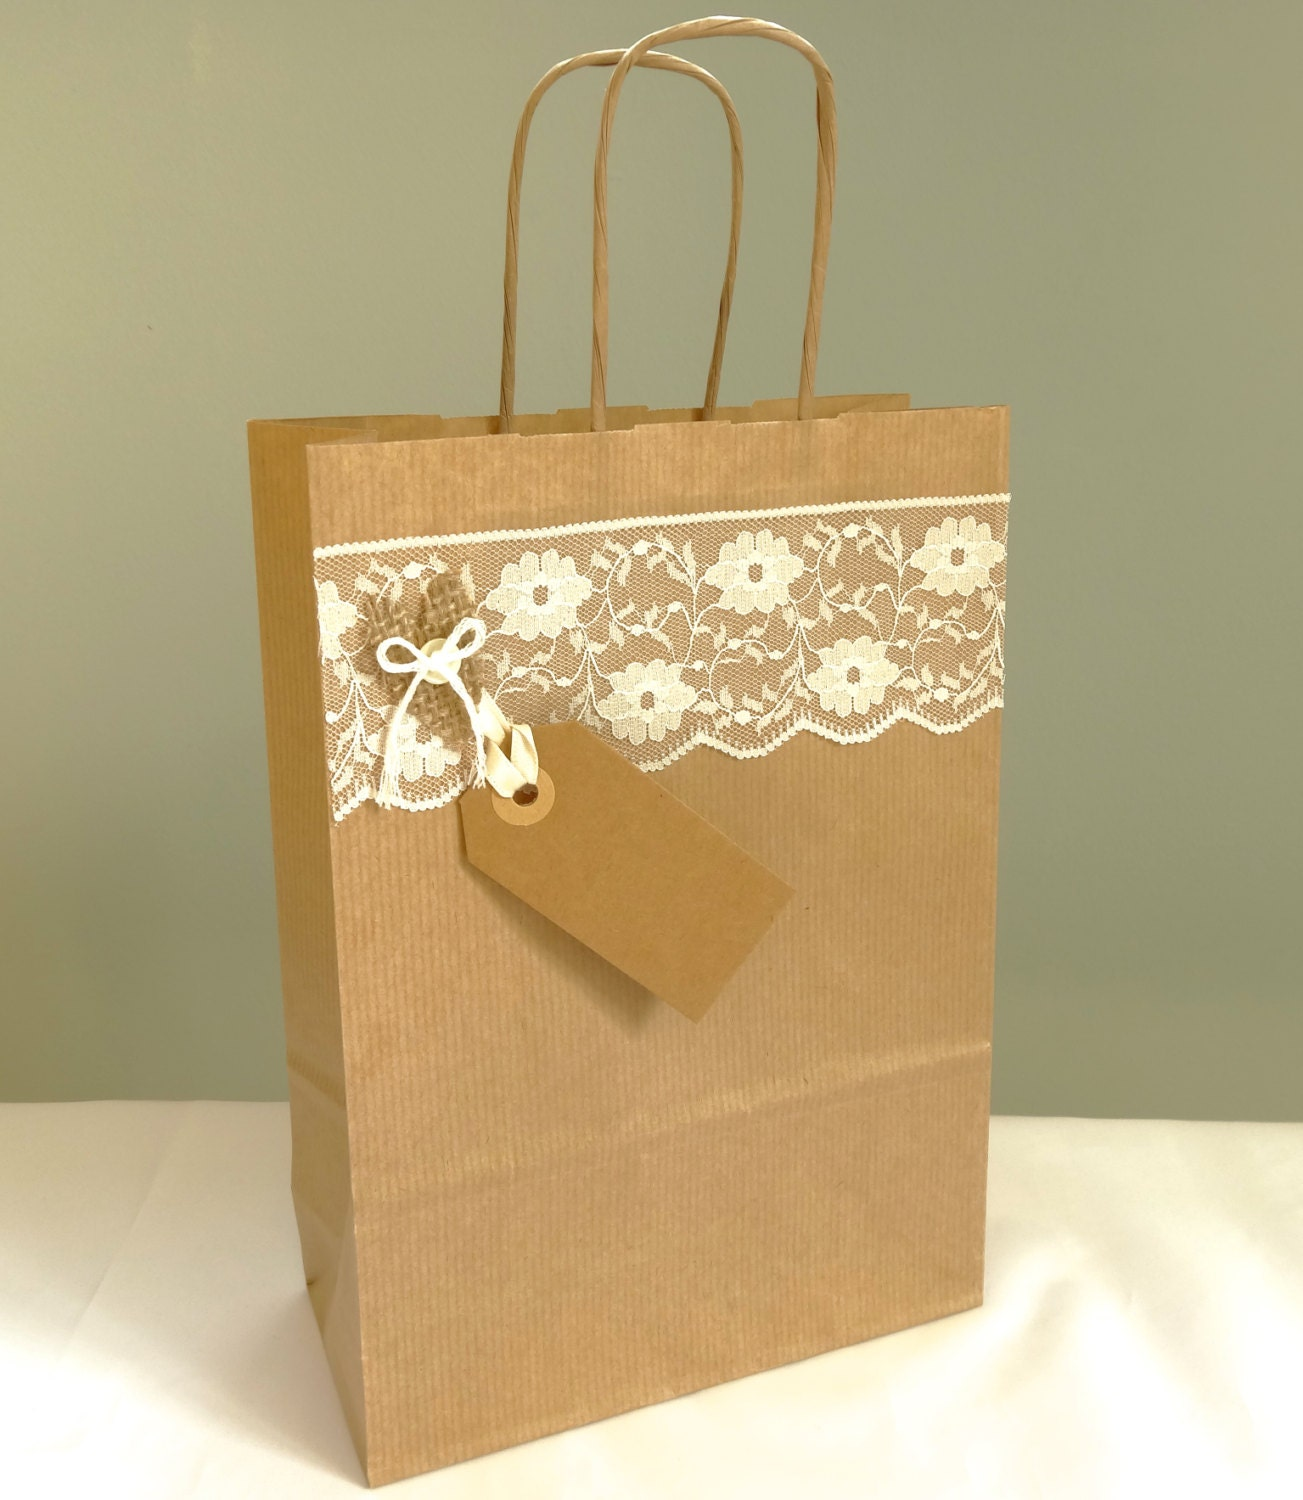 Wedding Gift Bags Bridesmaids : Wedding gift bag burlap and lace shabby chic wedding favour